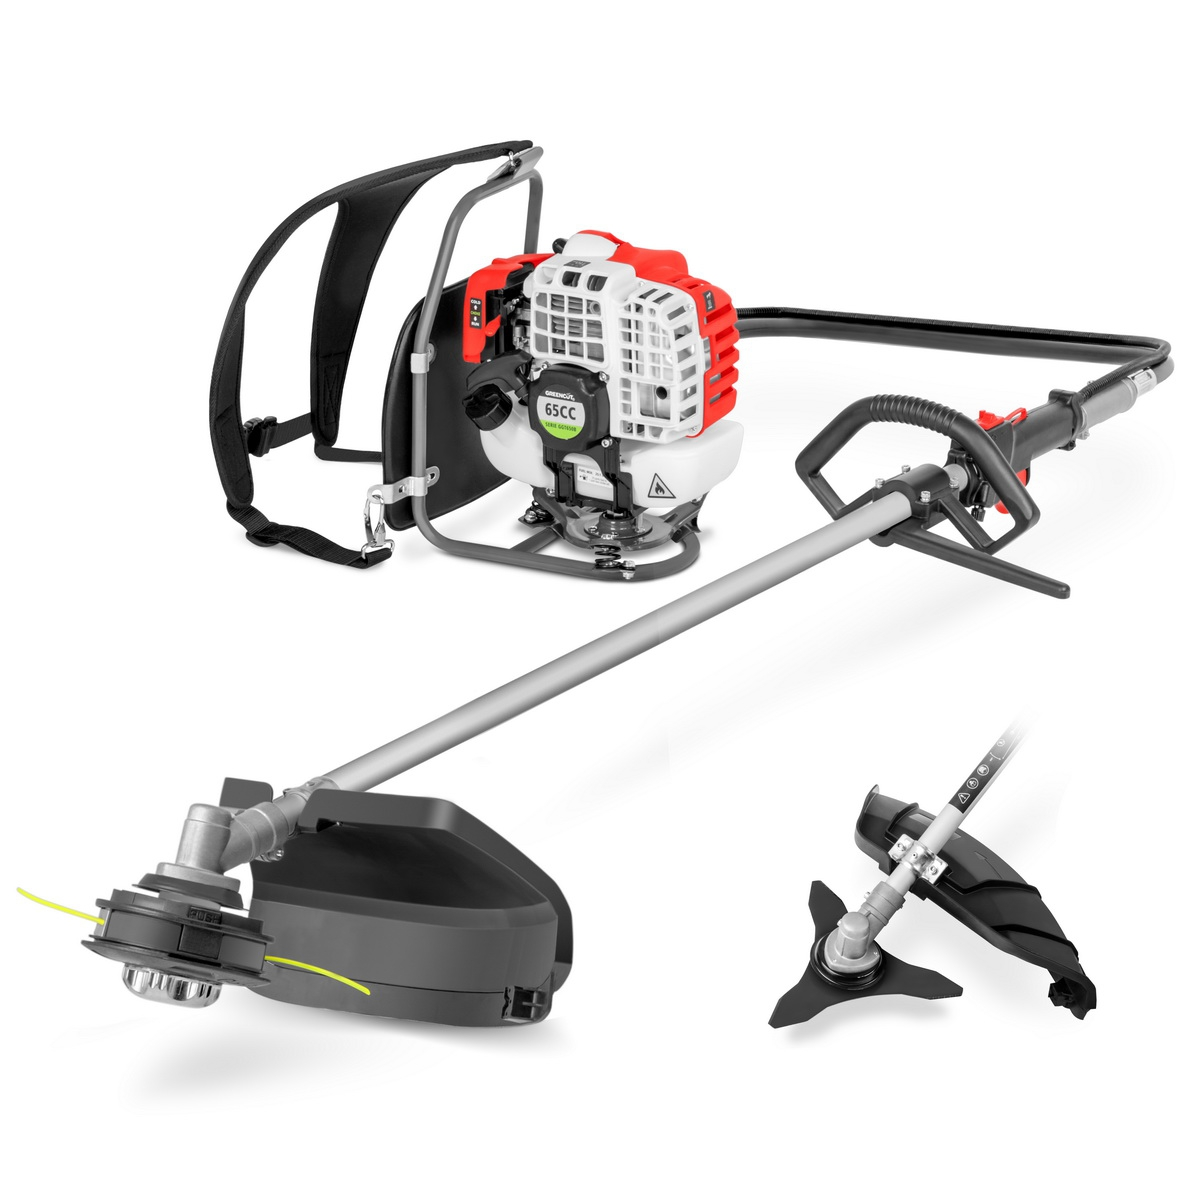 Brushcutter Gasoline's Backpack GREENCUT 65cc And 4,9cv 2 In 1 With Brushcutter Accessories Disc 3 Tips, Headstock From Thread And A